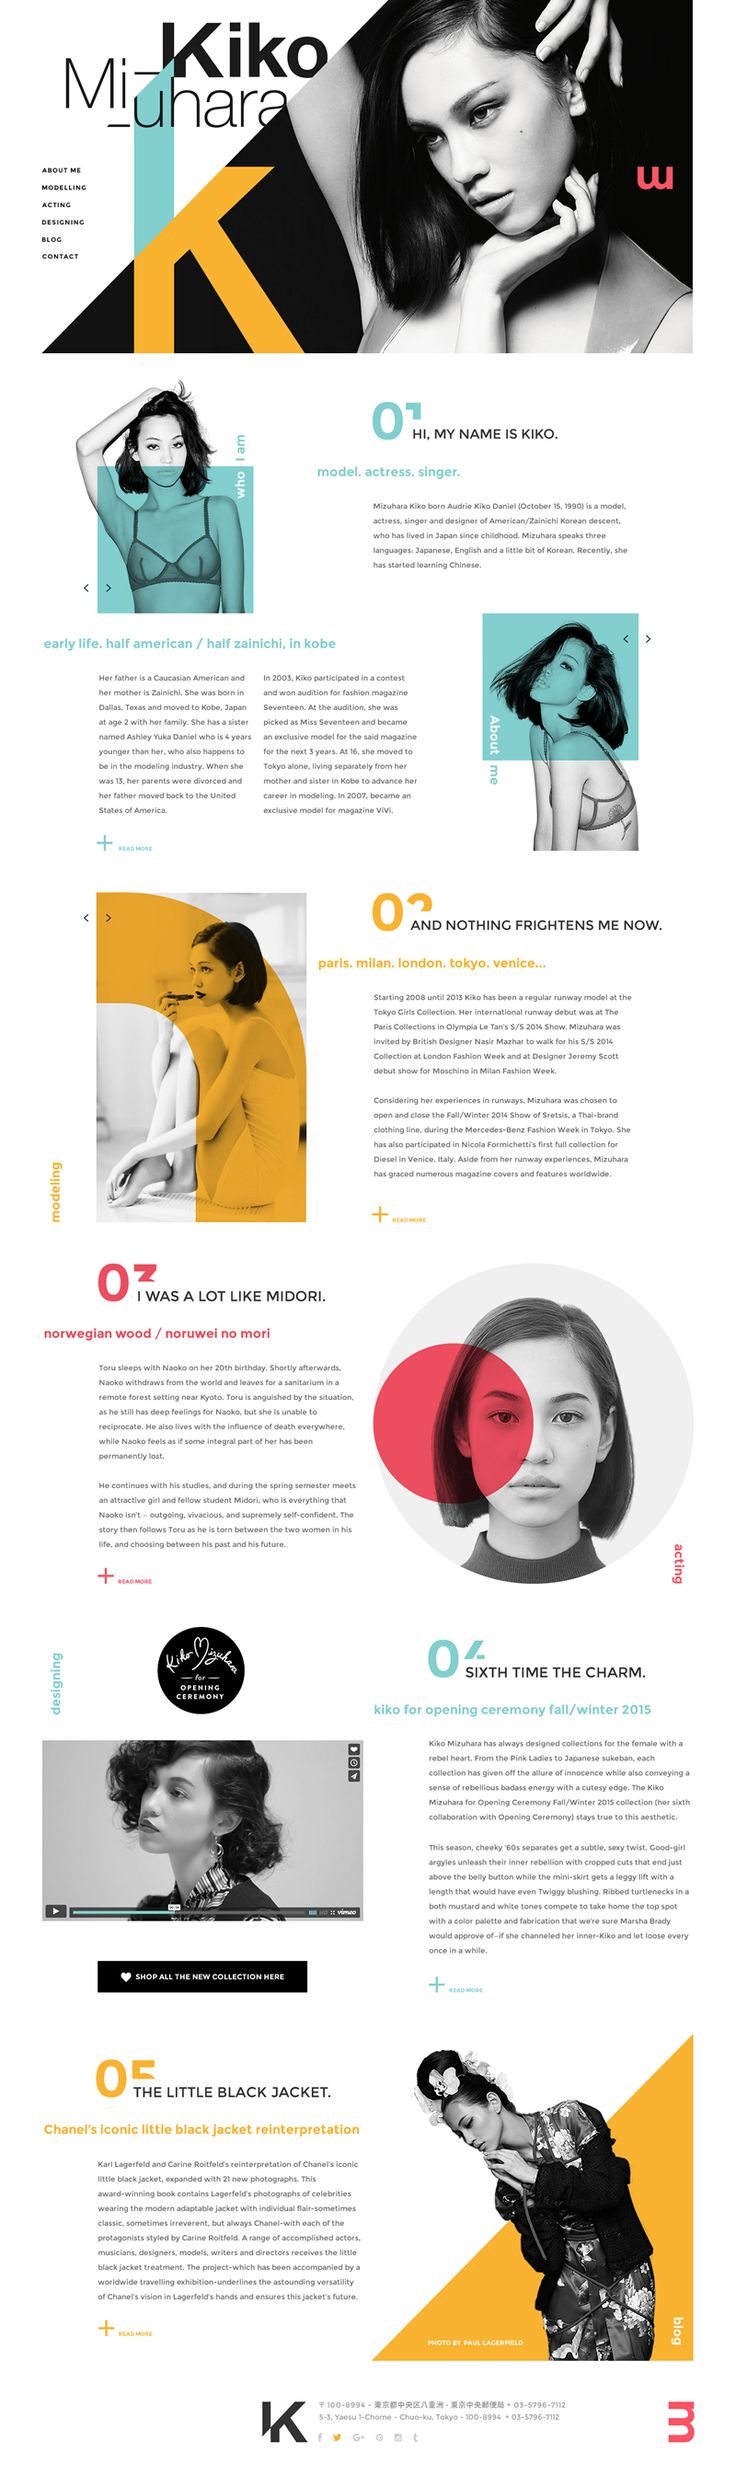 Interesting branding motifs {Kiko Mizuhara}